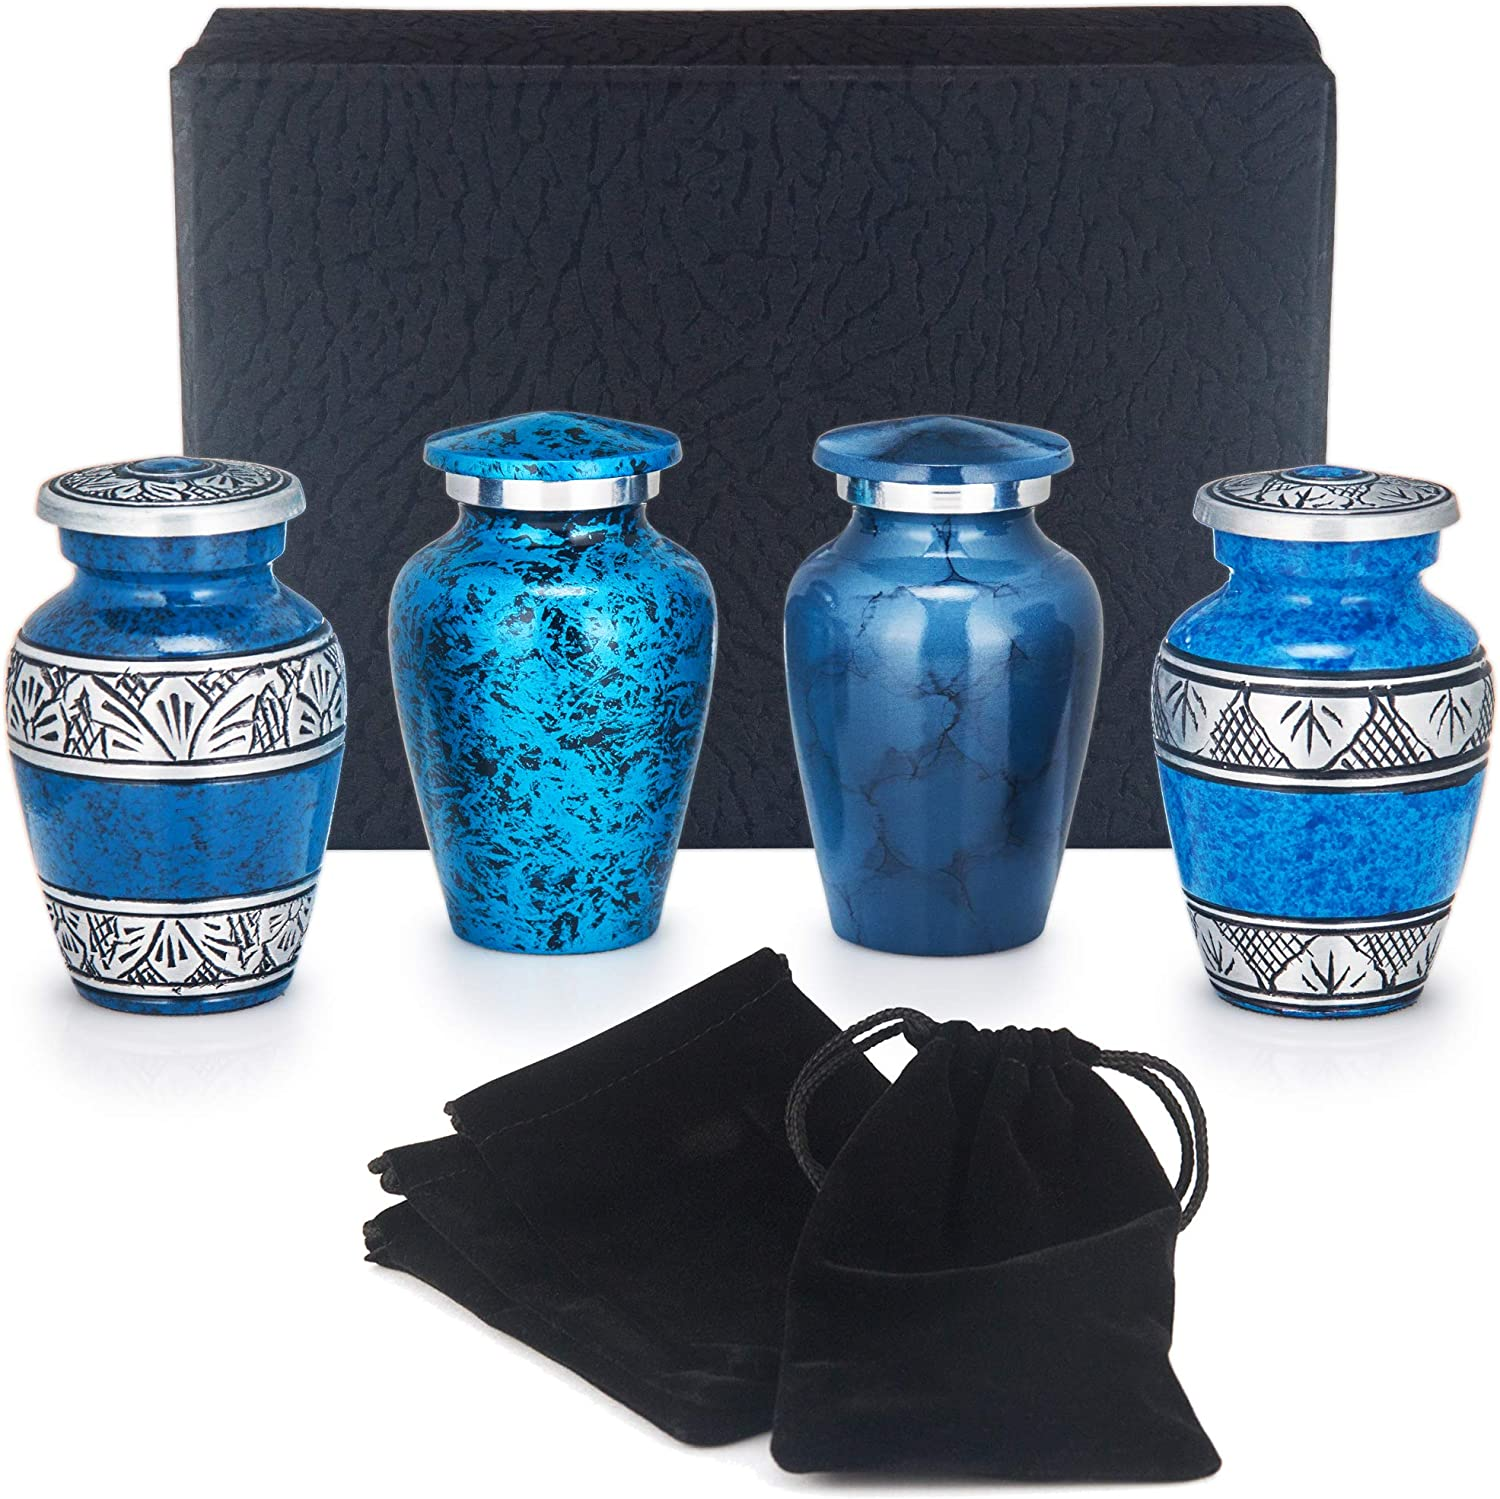 Adera Dreams Small Urns For Human Ashes Keepsake Set Of 4 Blue Memories Mini Cremation Urns Memorial Ashes Urn With Case Velvet Pouch And Funnel Miniature Burial Funeral Urns